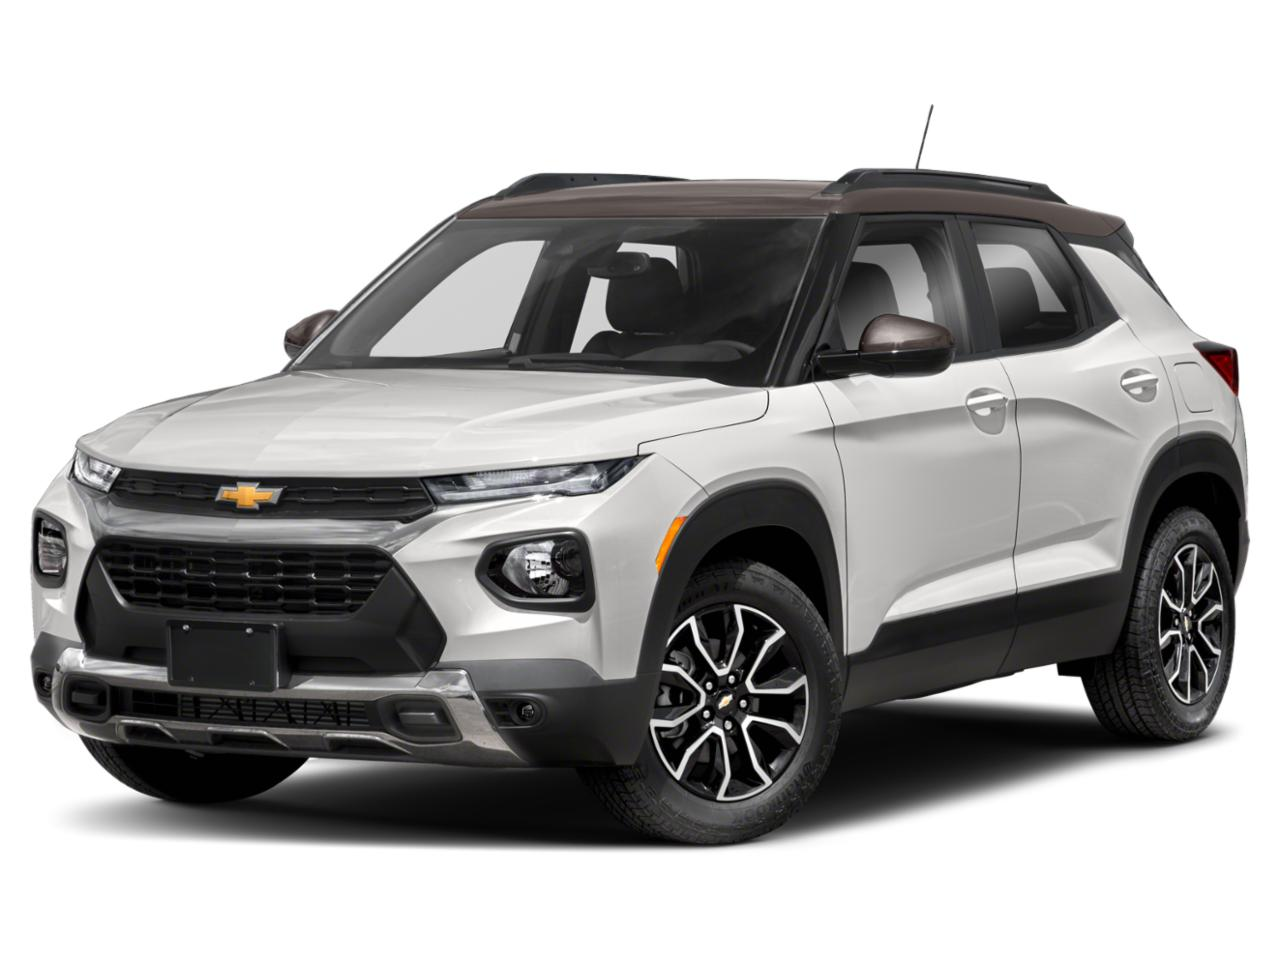 2021 Chevrolet Trailblazer Vehicle Photo in Redding, CA 96002